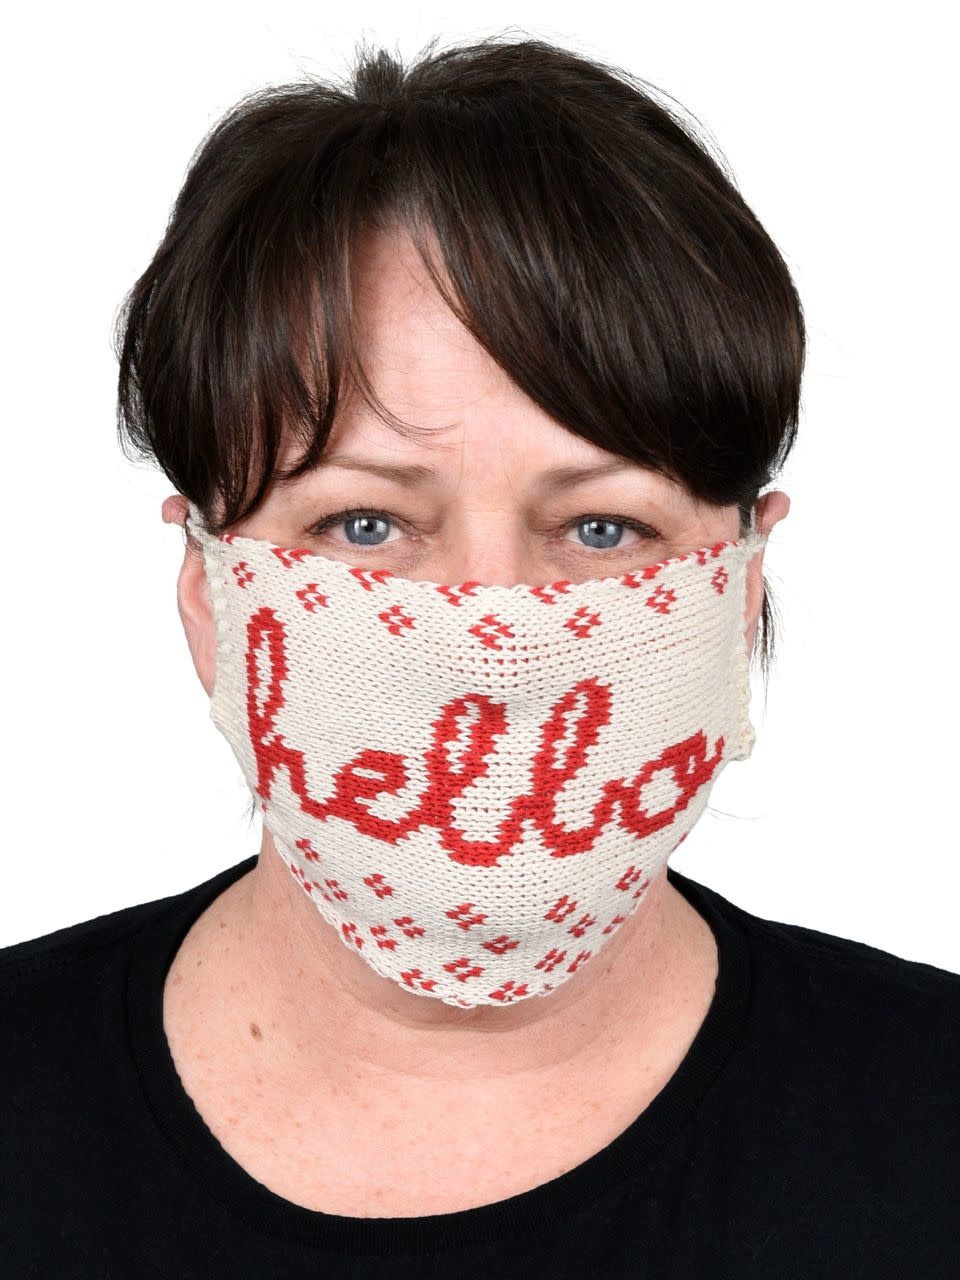 Green 3 Apparel Hello Sweater Knit Face Mask